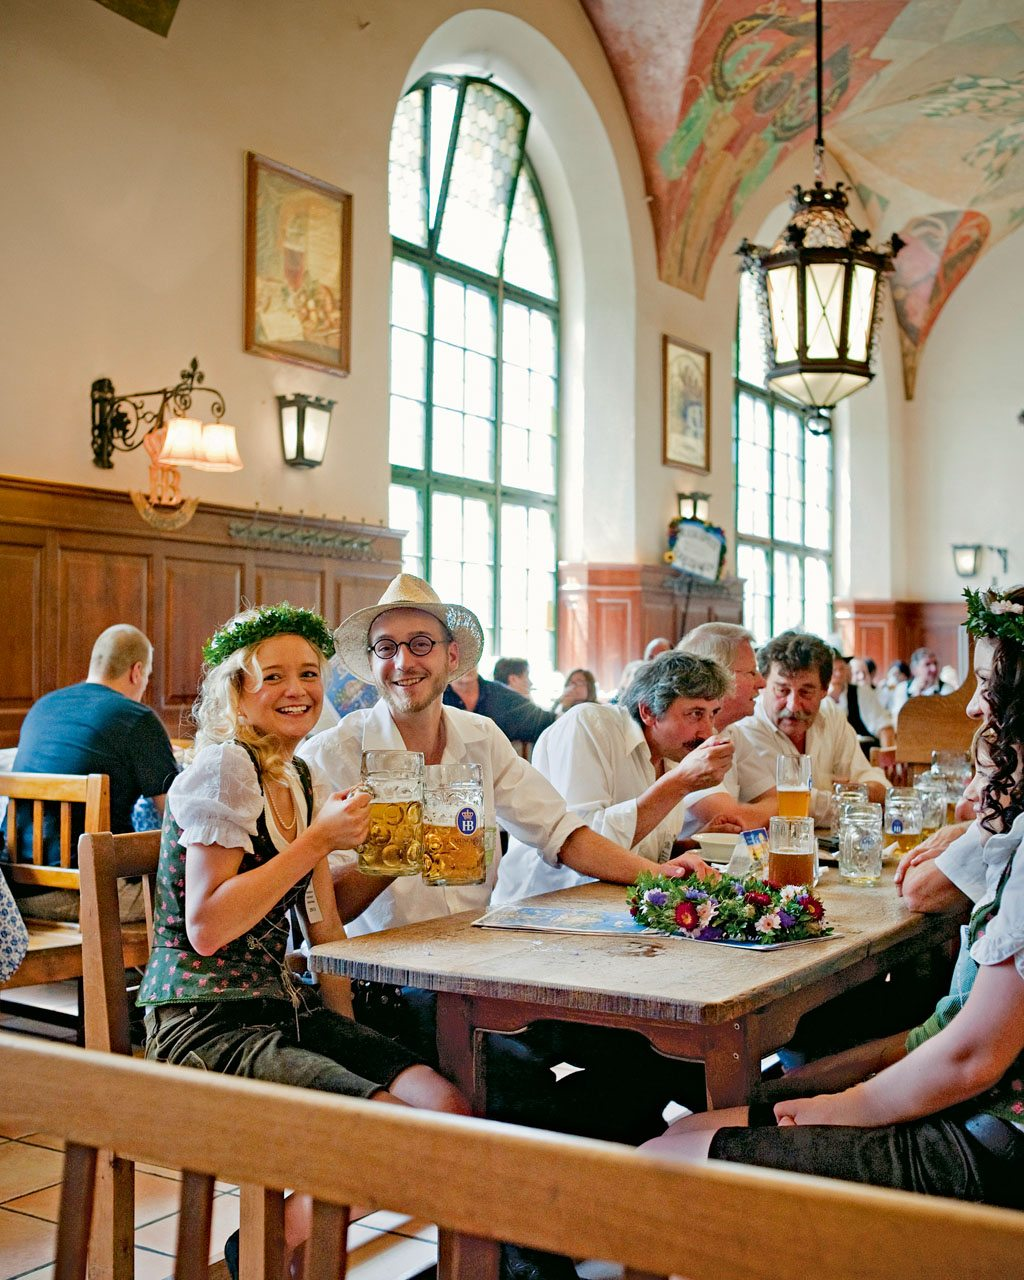 Yes, it's touristy, but Munich's Hofbräuhaus piles on the charm—and the litres of beer. Photo: Jens Schwarz/Laif/Redux